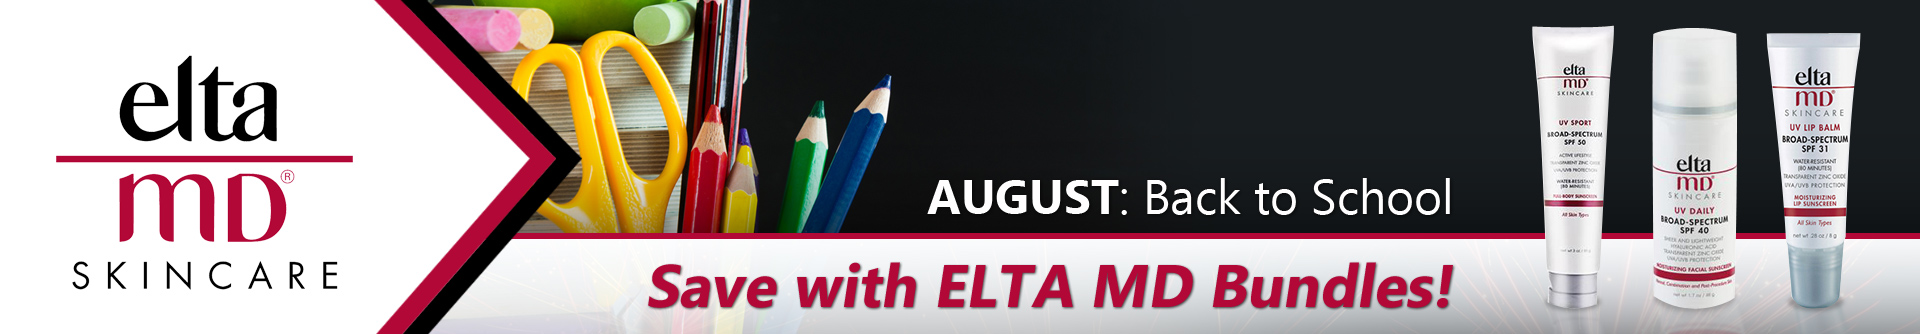 Bundle with Elta MD and save!